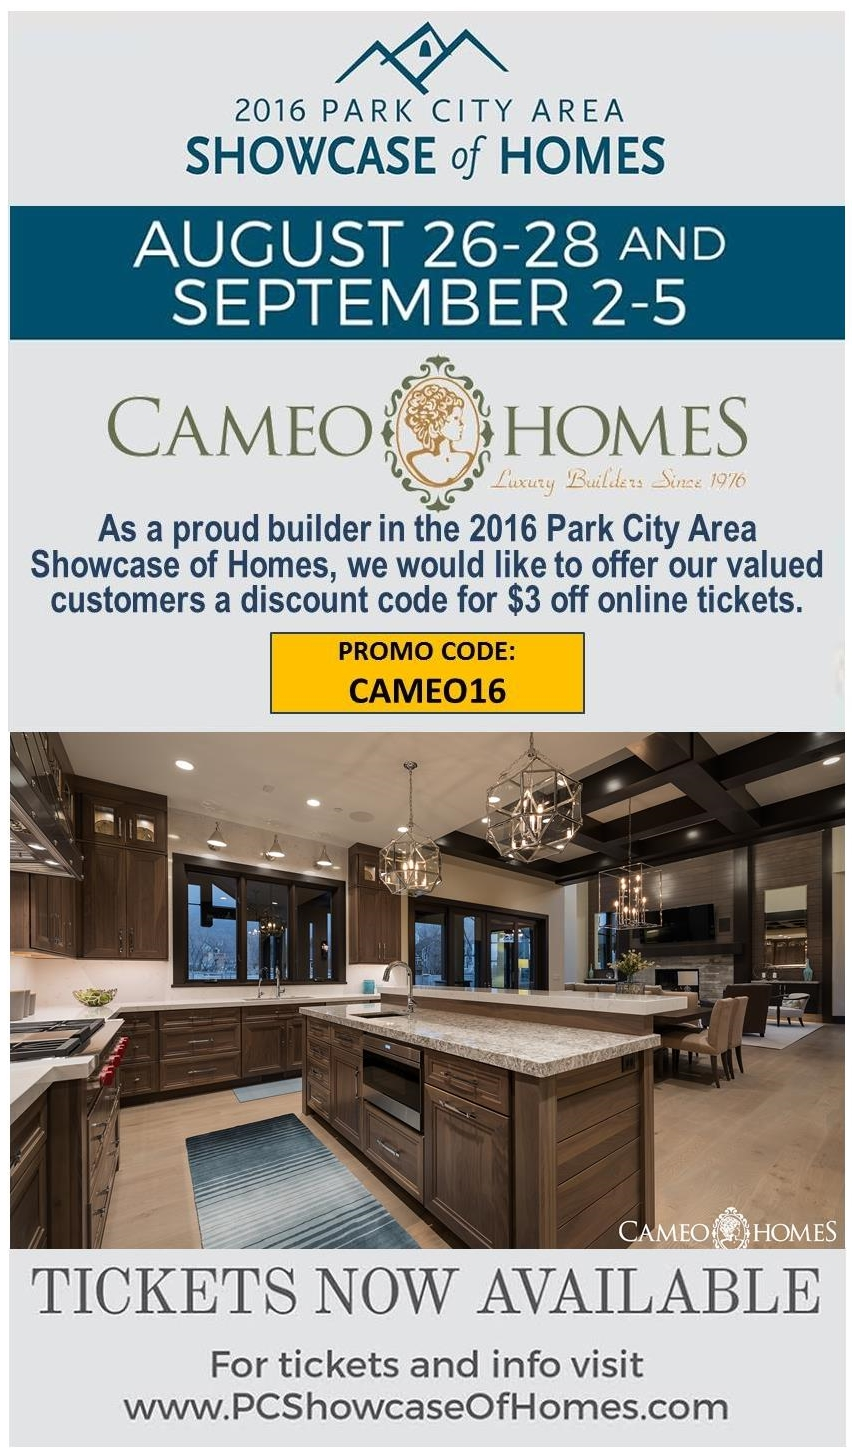 Utah Luxury Home Builders since 1976, Cameo Homes Inc.